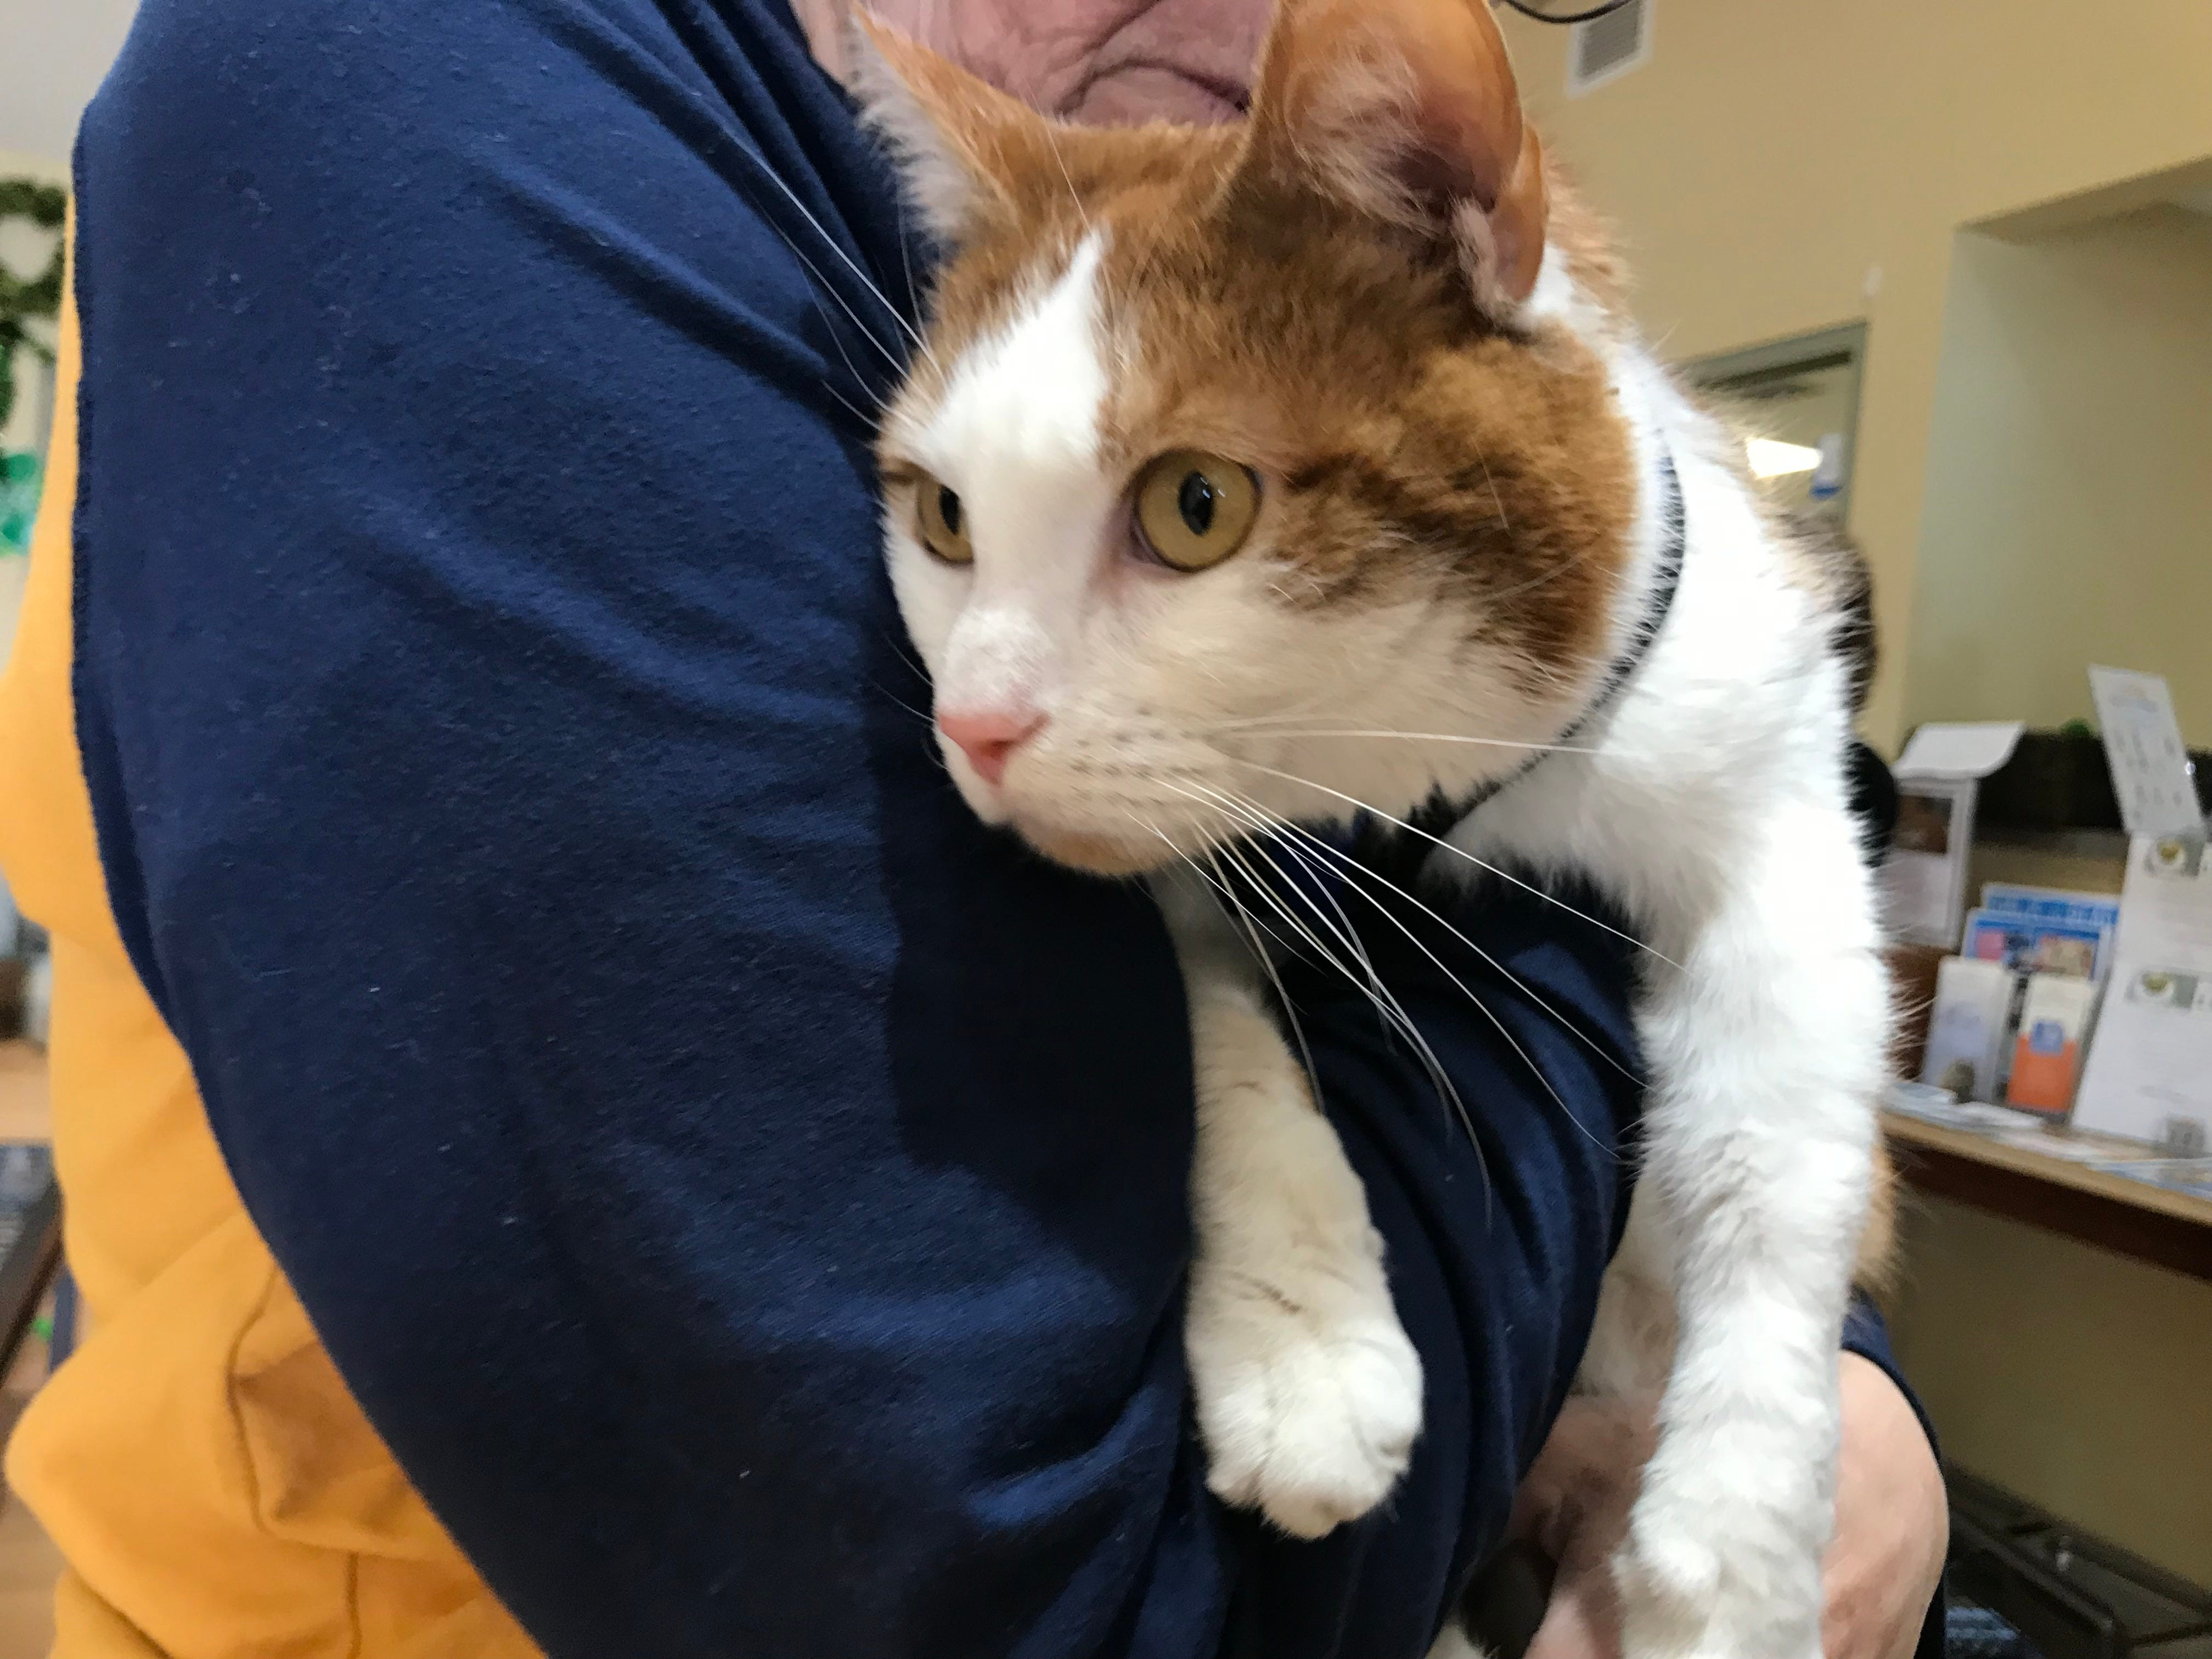 """Tabby's Place, a cage-free, no-kill cat sanctuary located on Route 202 in Flemington, opened its doors 15 years ago to rescue cats from """"hopeless situations."""" Tabby's Place recently launched """"Aged to Purrfection,"""" a pet therapy program that  brings cats to assisted living facilities."""